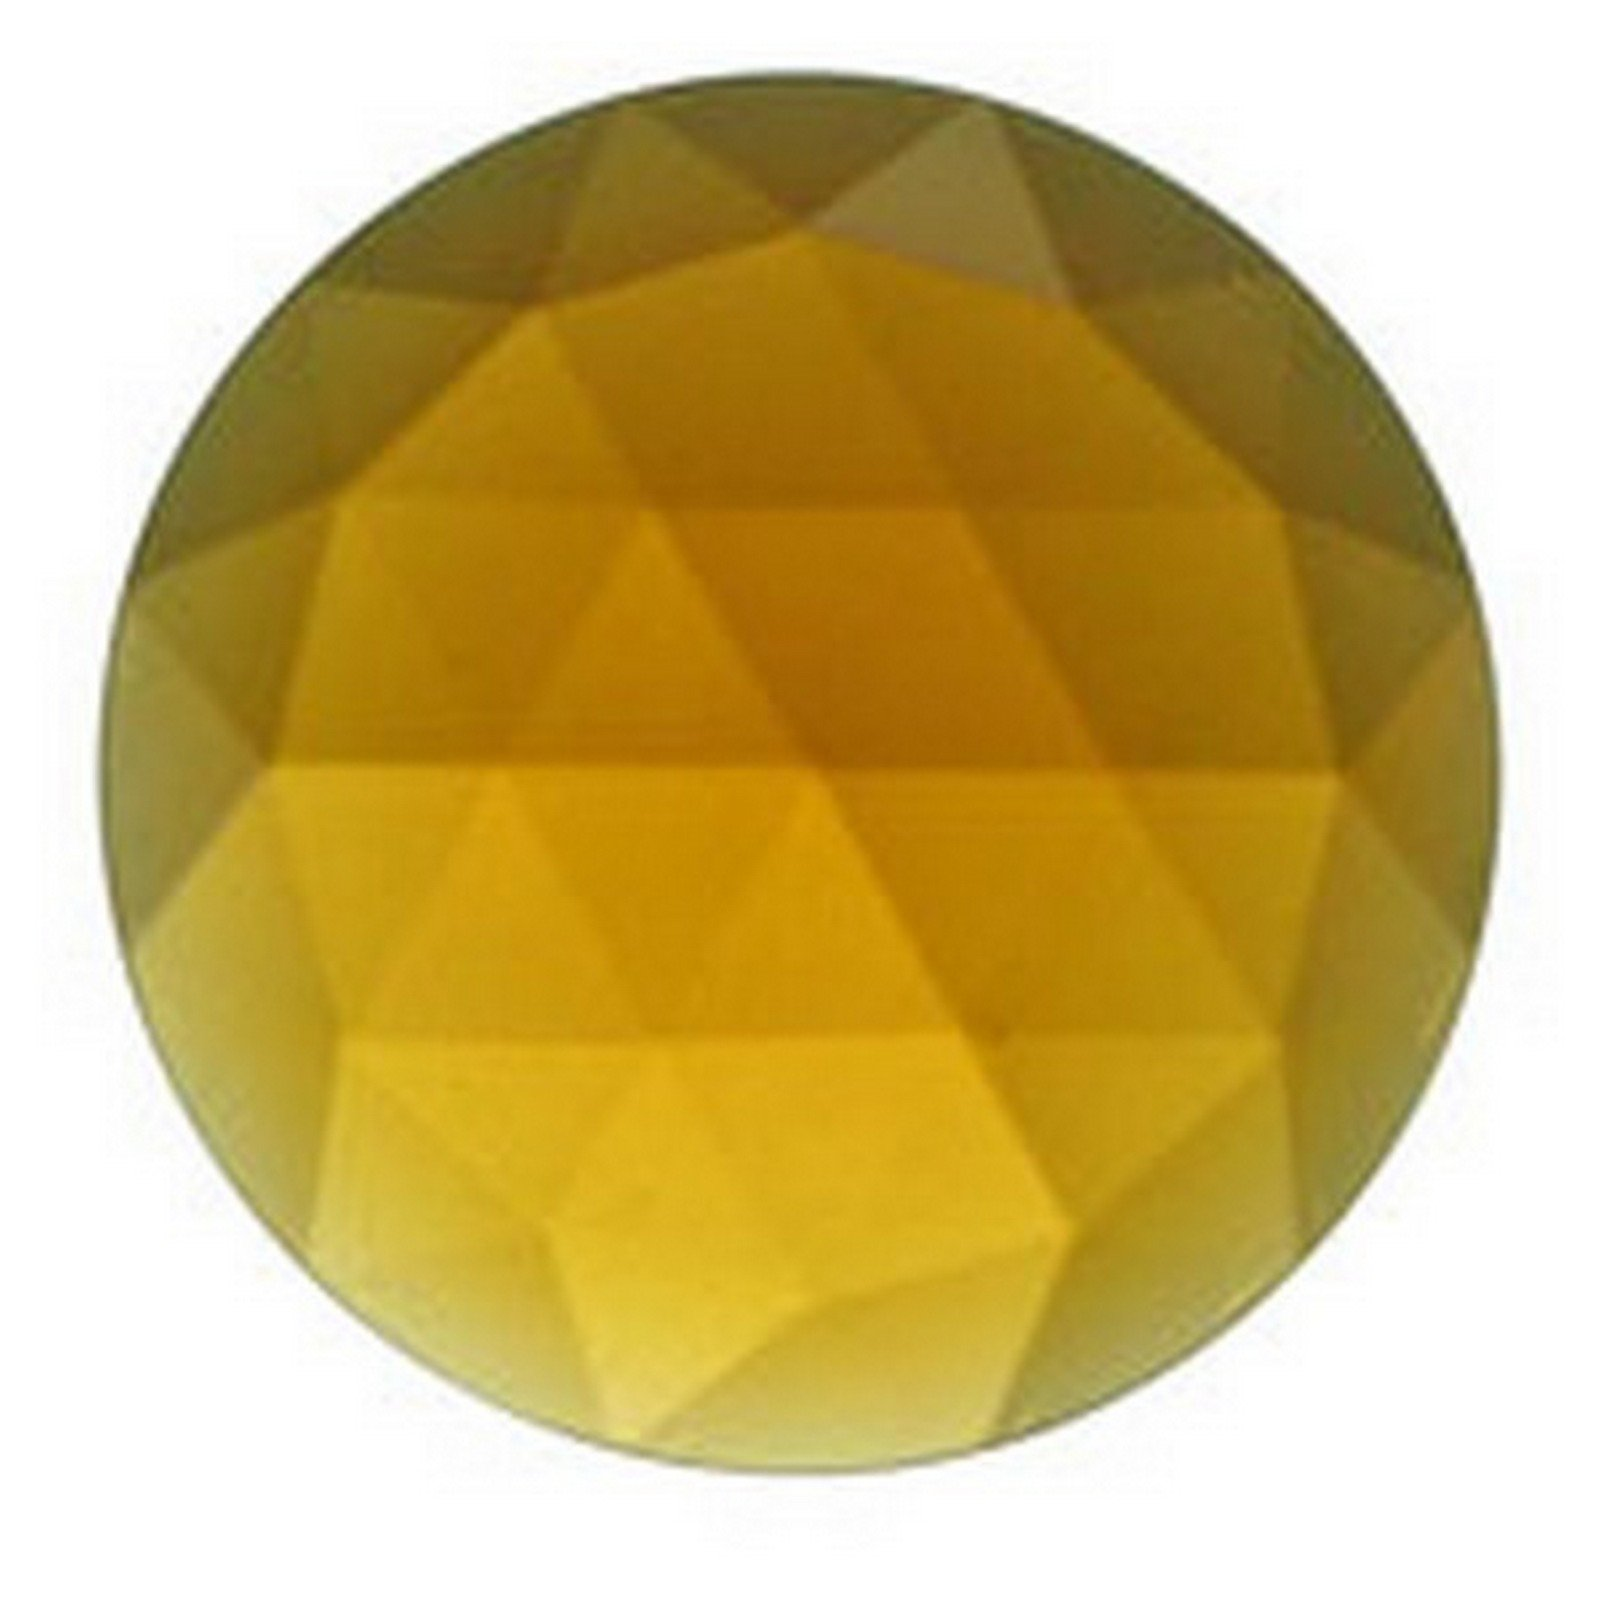 Stained Glass Jewels - 25mm Round Faceted - Light Amber (Pack of 4) By Stallings Stained Glass by Stallings Stained Glass